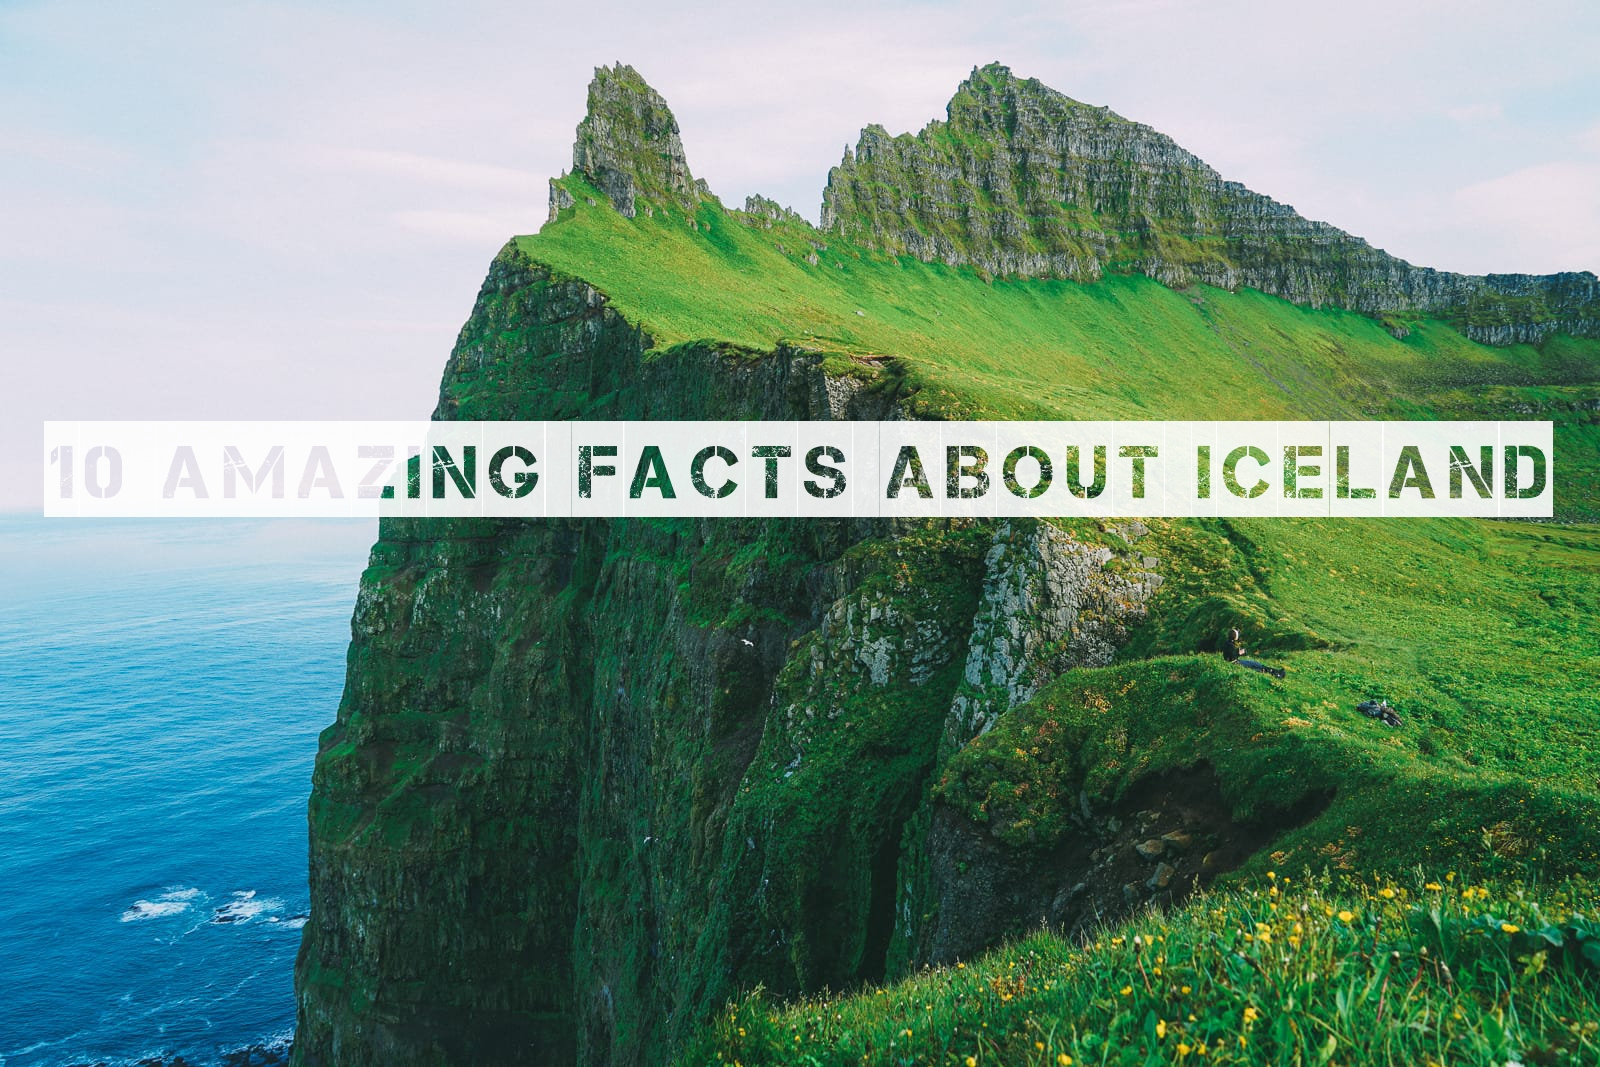 10 facts about Iceland